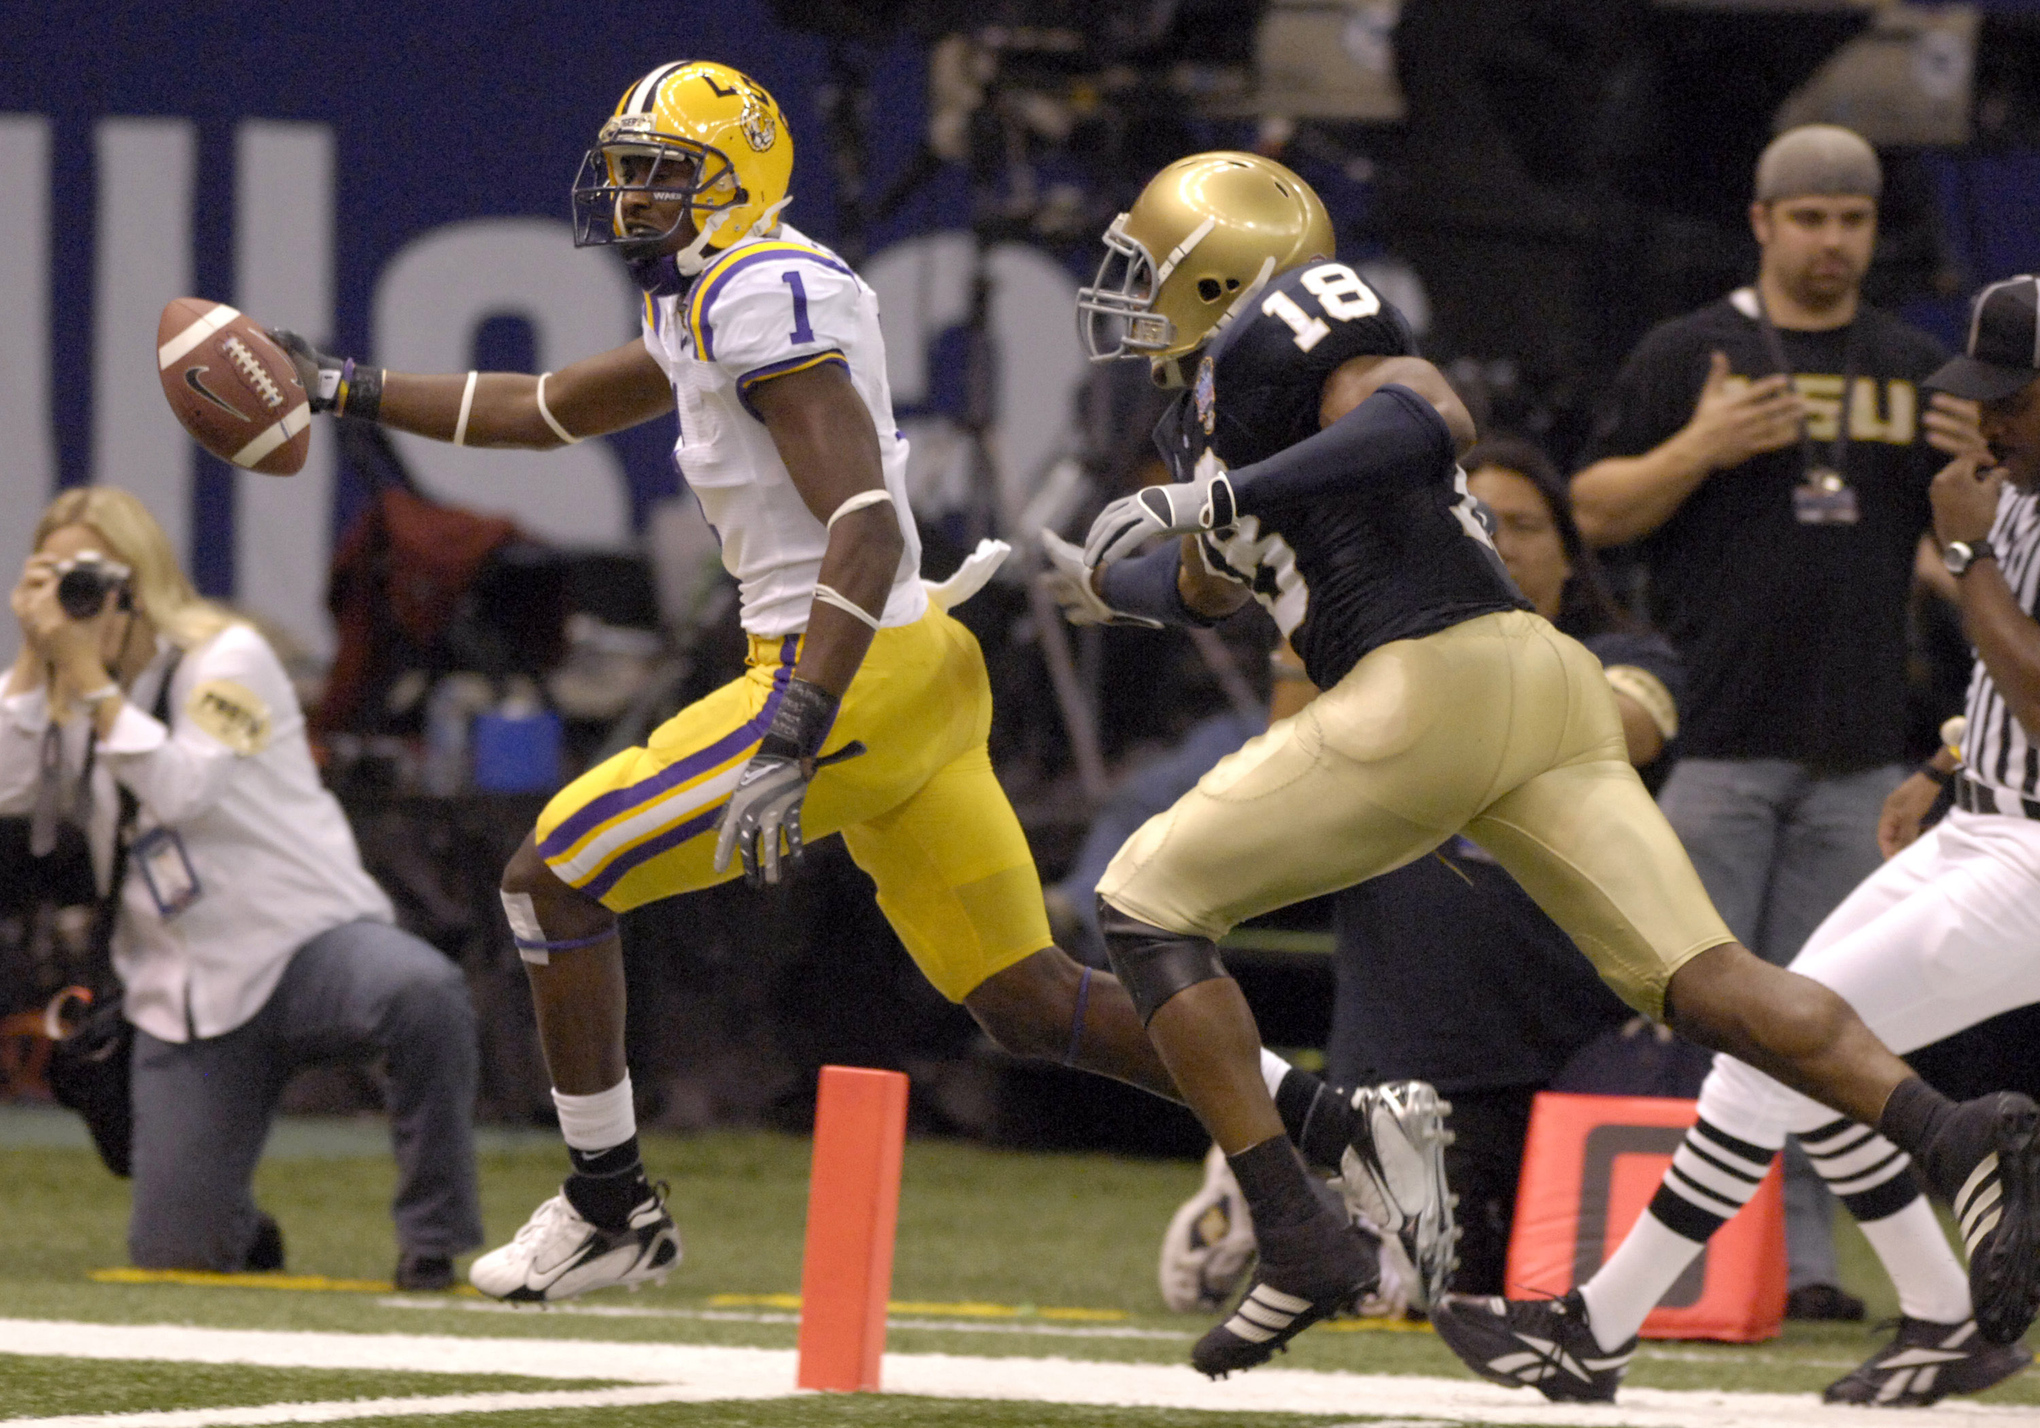 Brandon LaFell dashes to the end zone with a touchdown pass against Notre Dame in the Allstate Sugar Bowl